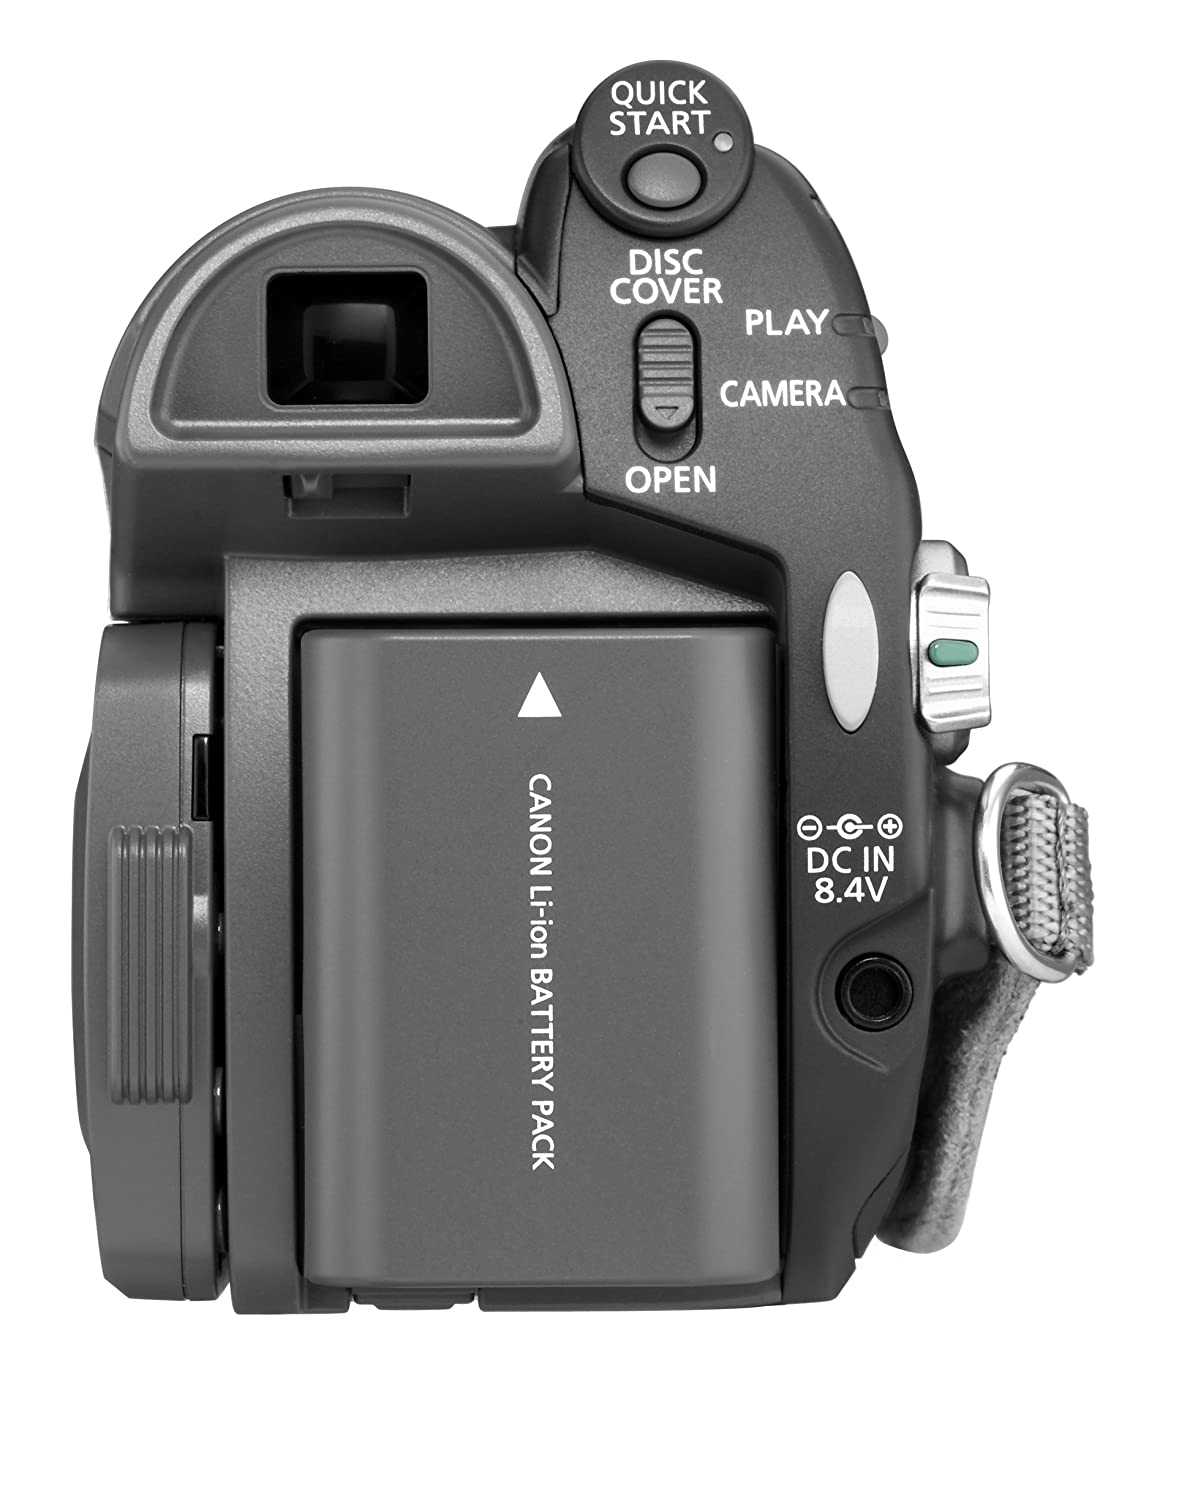 Amazon.com : Canon DC330 1.07MP DVD Camcorder with 37x Optical Zoom  (Discontinued by Manufacturer) : Camera & Photo